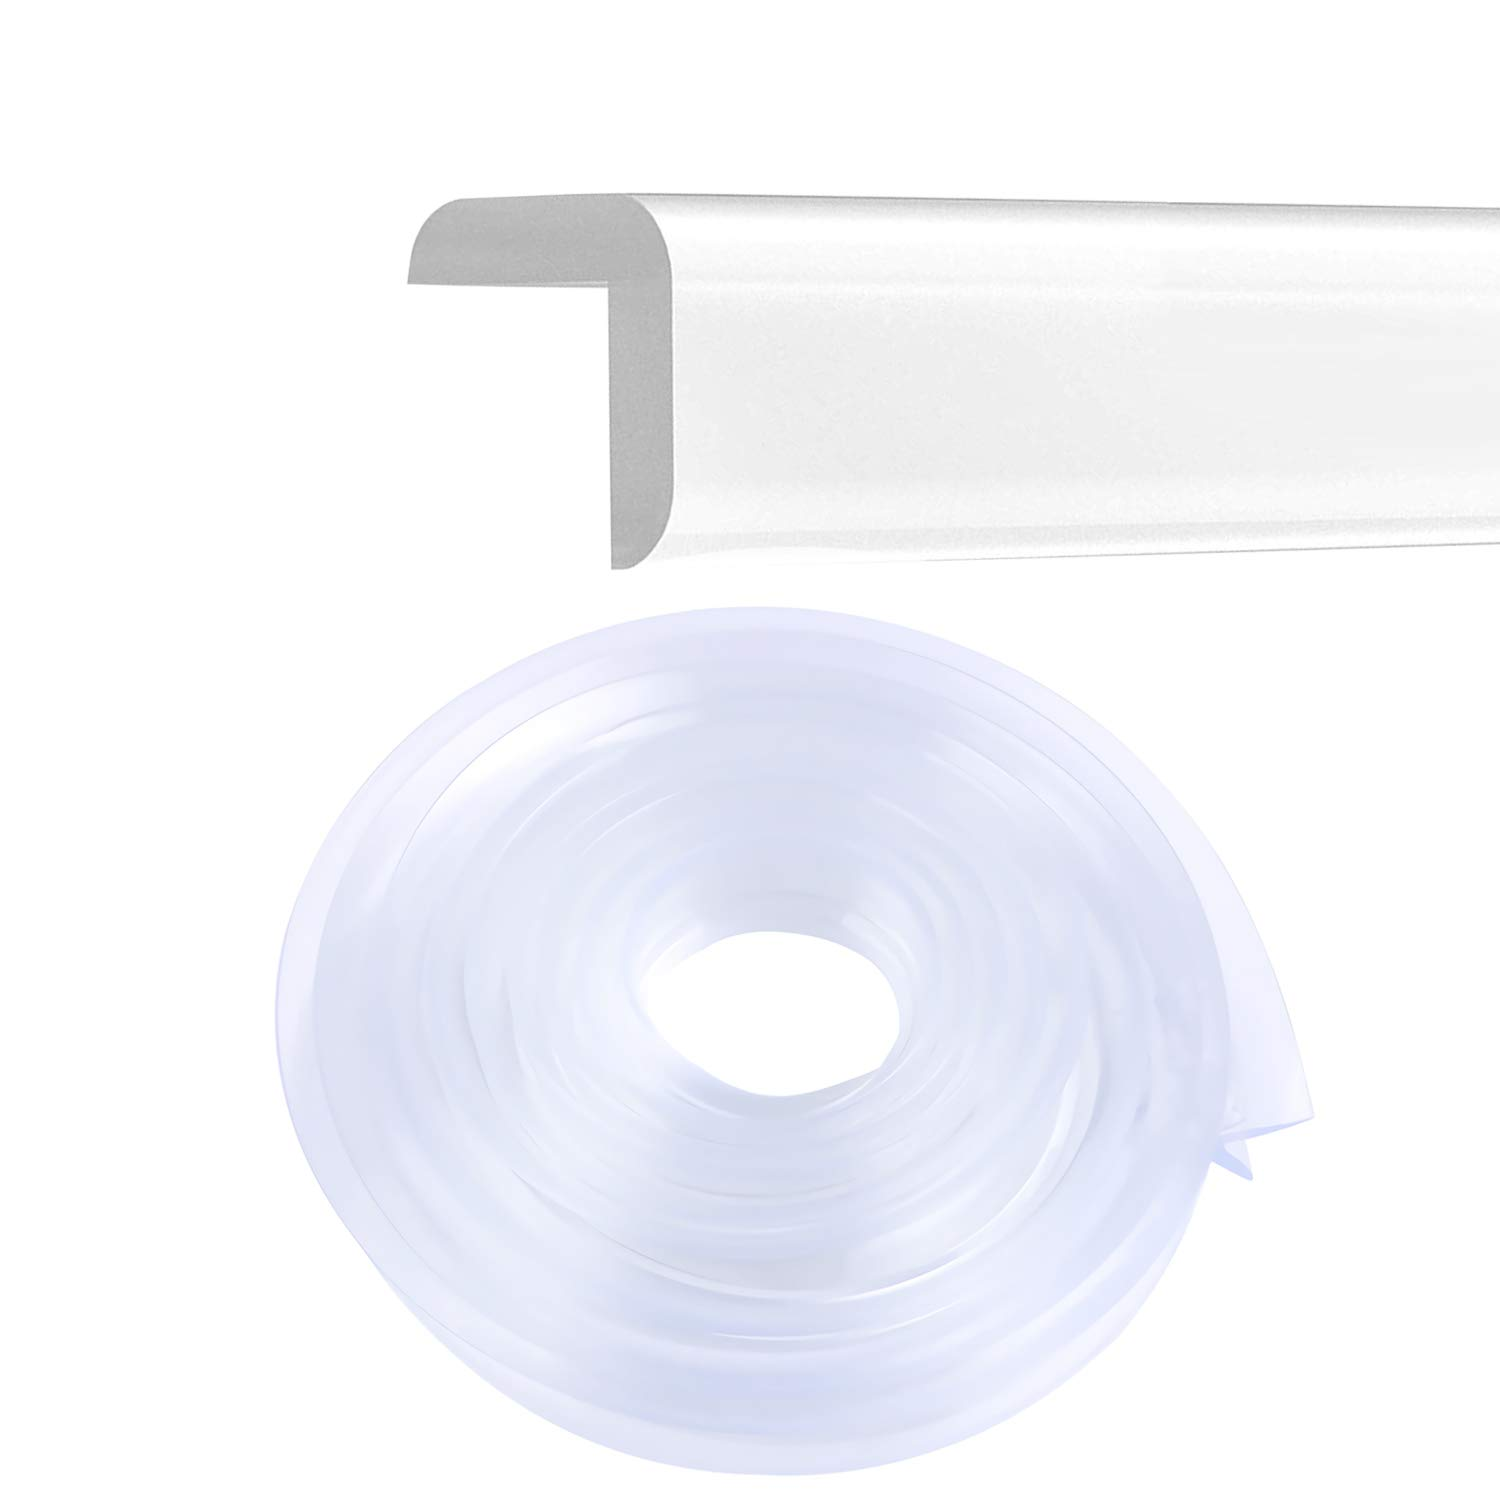 Corner Guards Furniture Edge Protectors Transparent Soft Silicone Bumper Strip Clear Edge Corner Cushion 20ft(6m) with Double-Sided Tape for Cabinets,Tables,Household